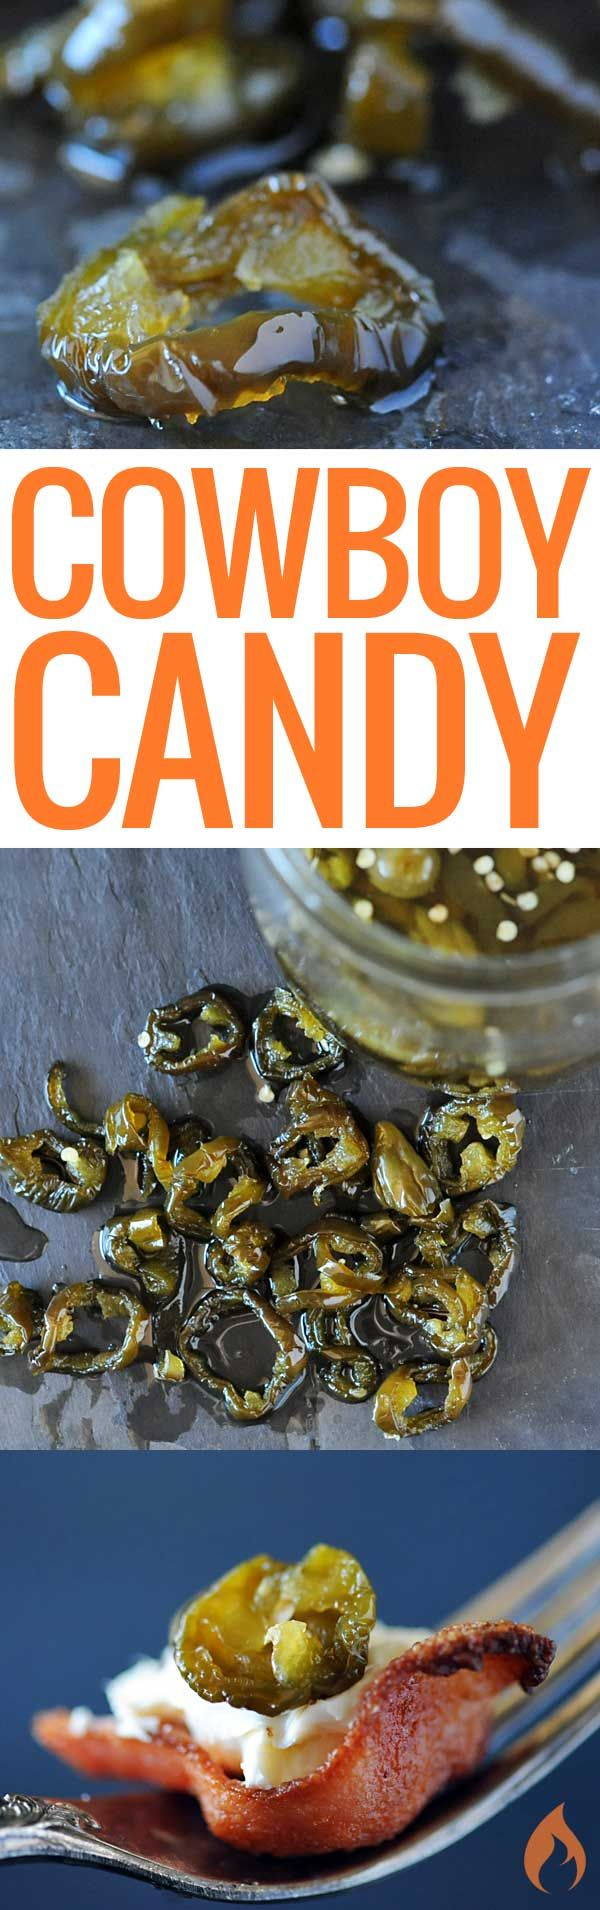 You'll pop these jalapenos like candy, even if you're a spice weenie. Cowboy Candy is addictive sweet candied jalapenos that are great with cream cheese.